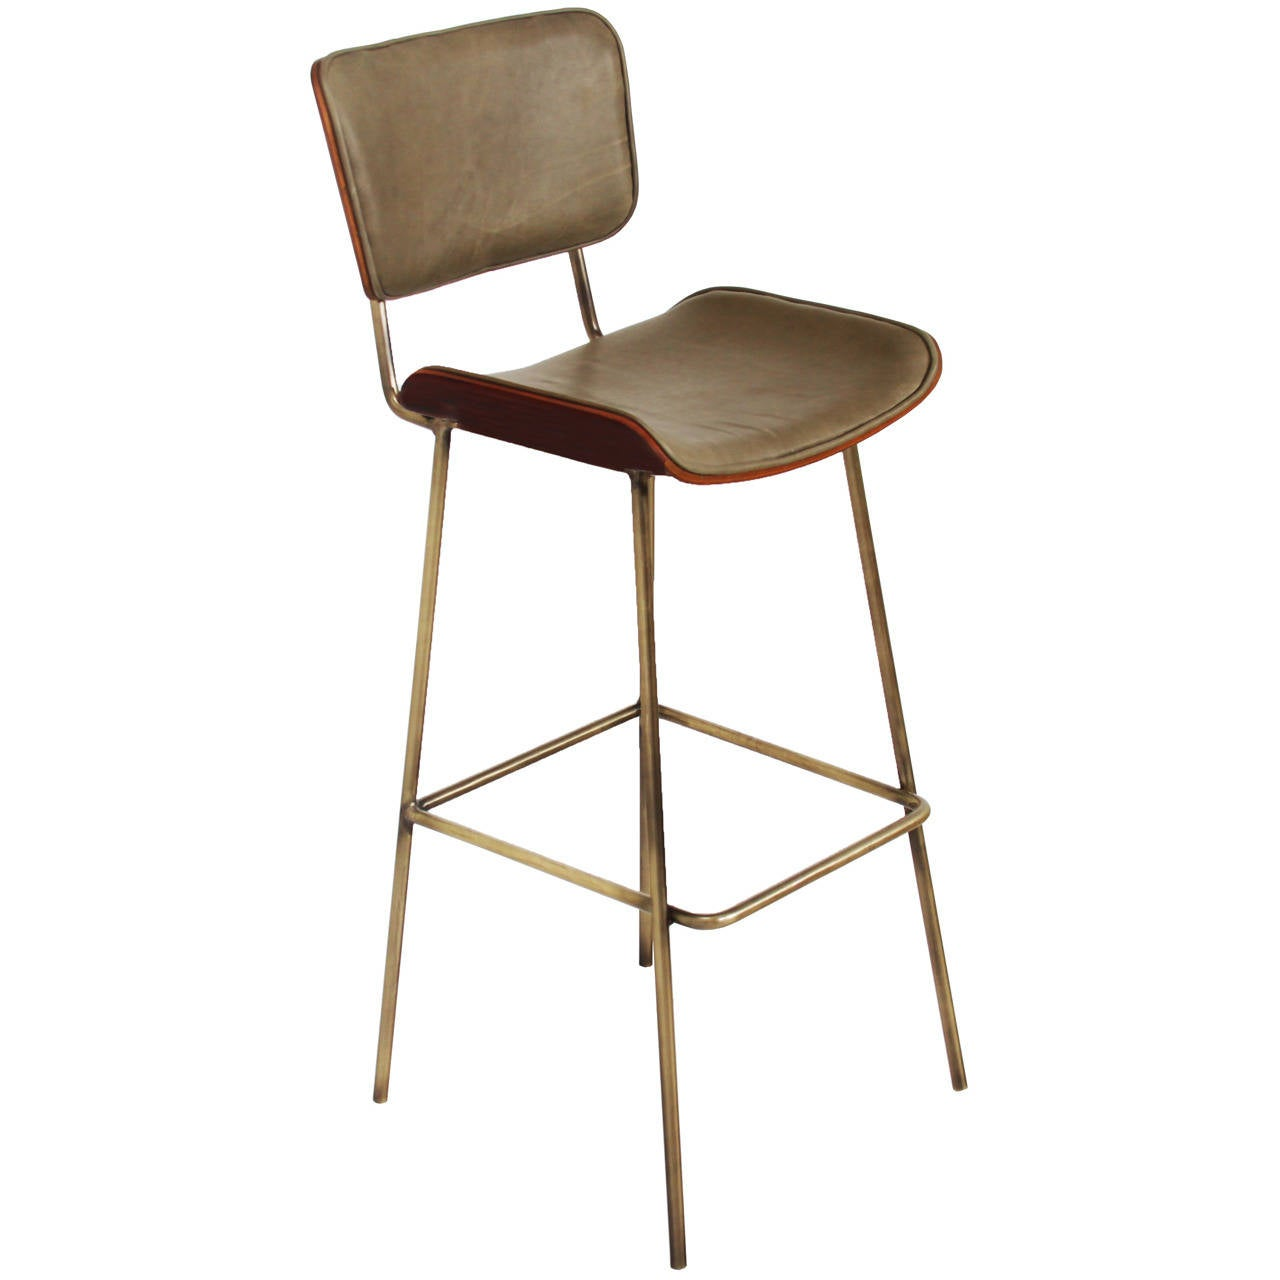 cojo bar stool in brass and rosewood by thomas hayes studio . cojo bar stool in brass and rosewood by thomas hayes studio for